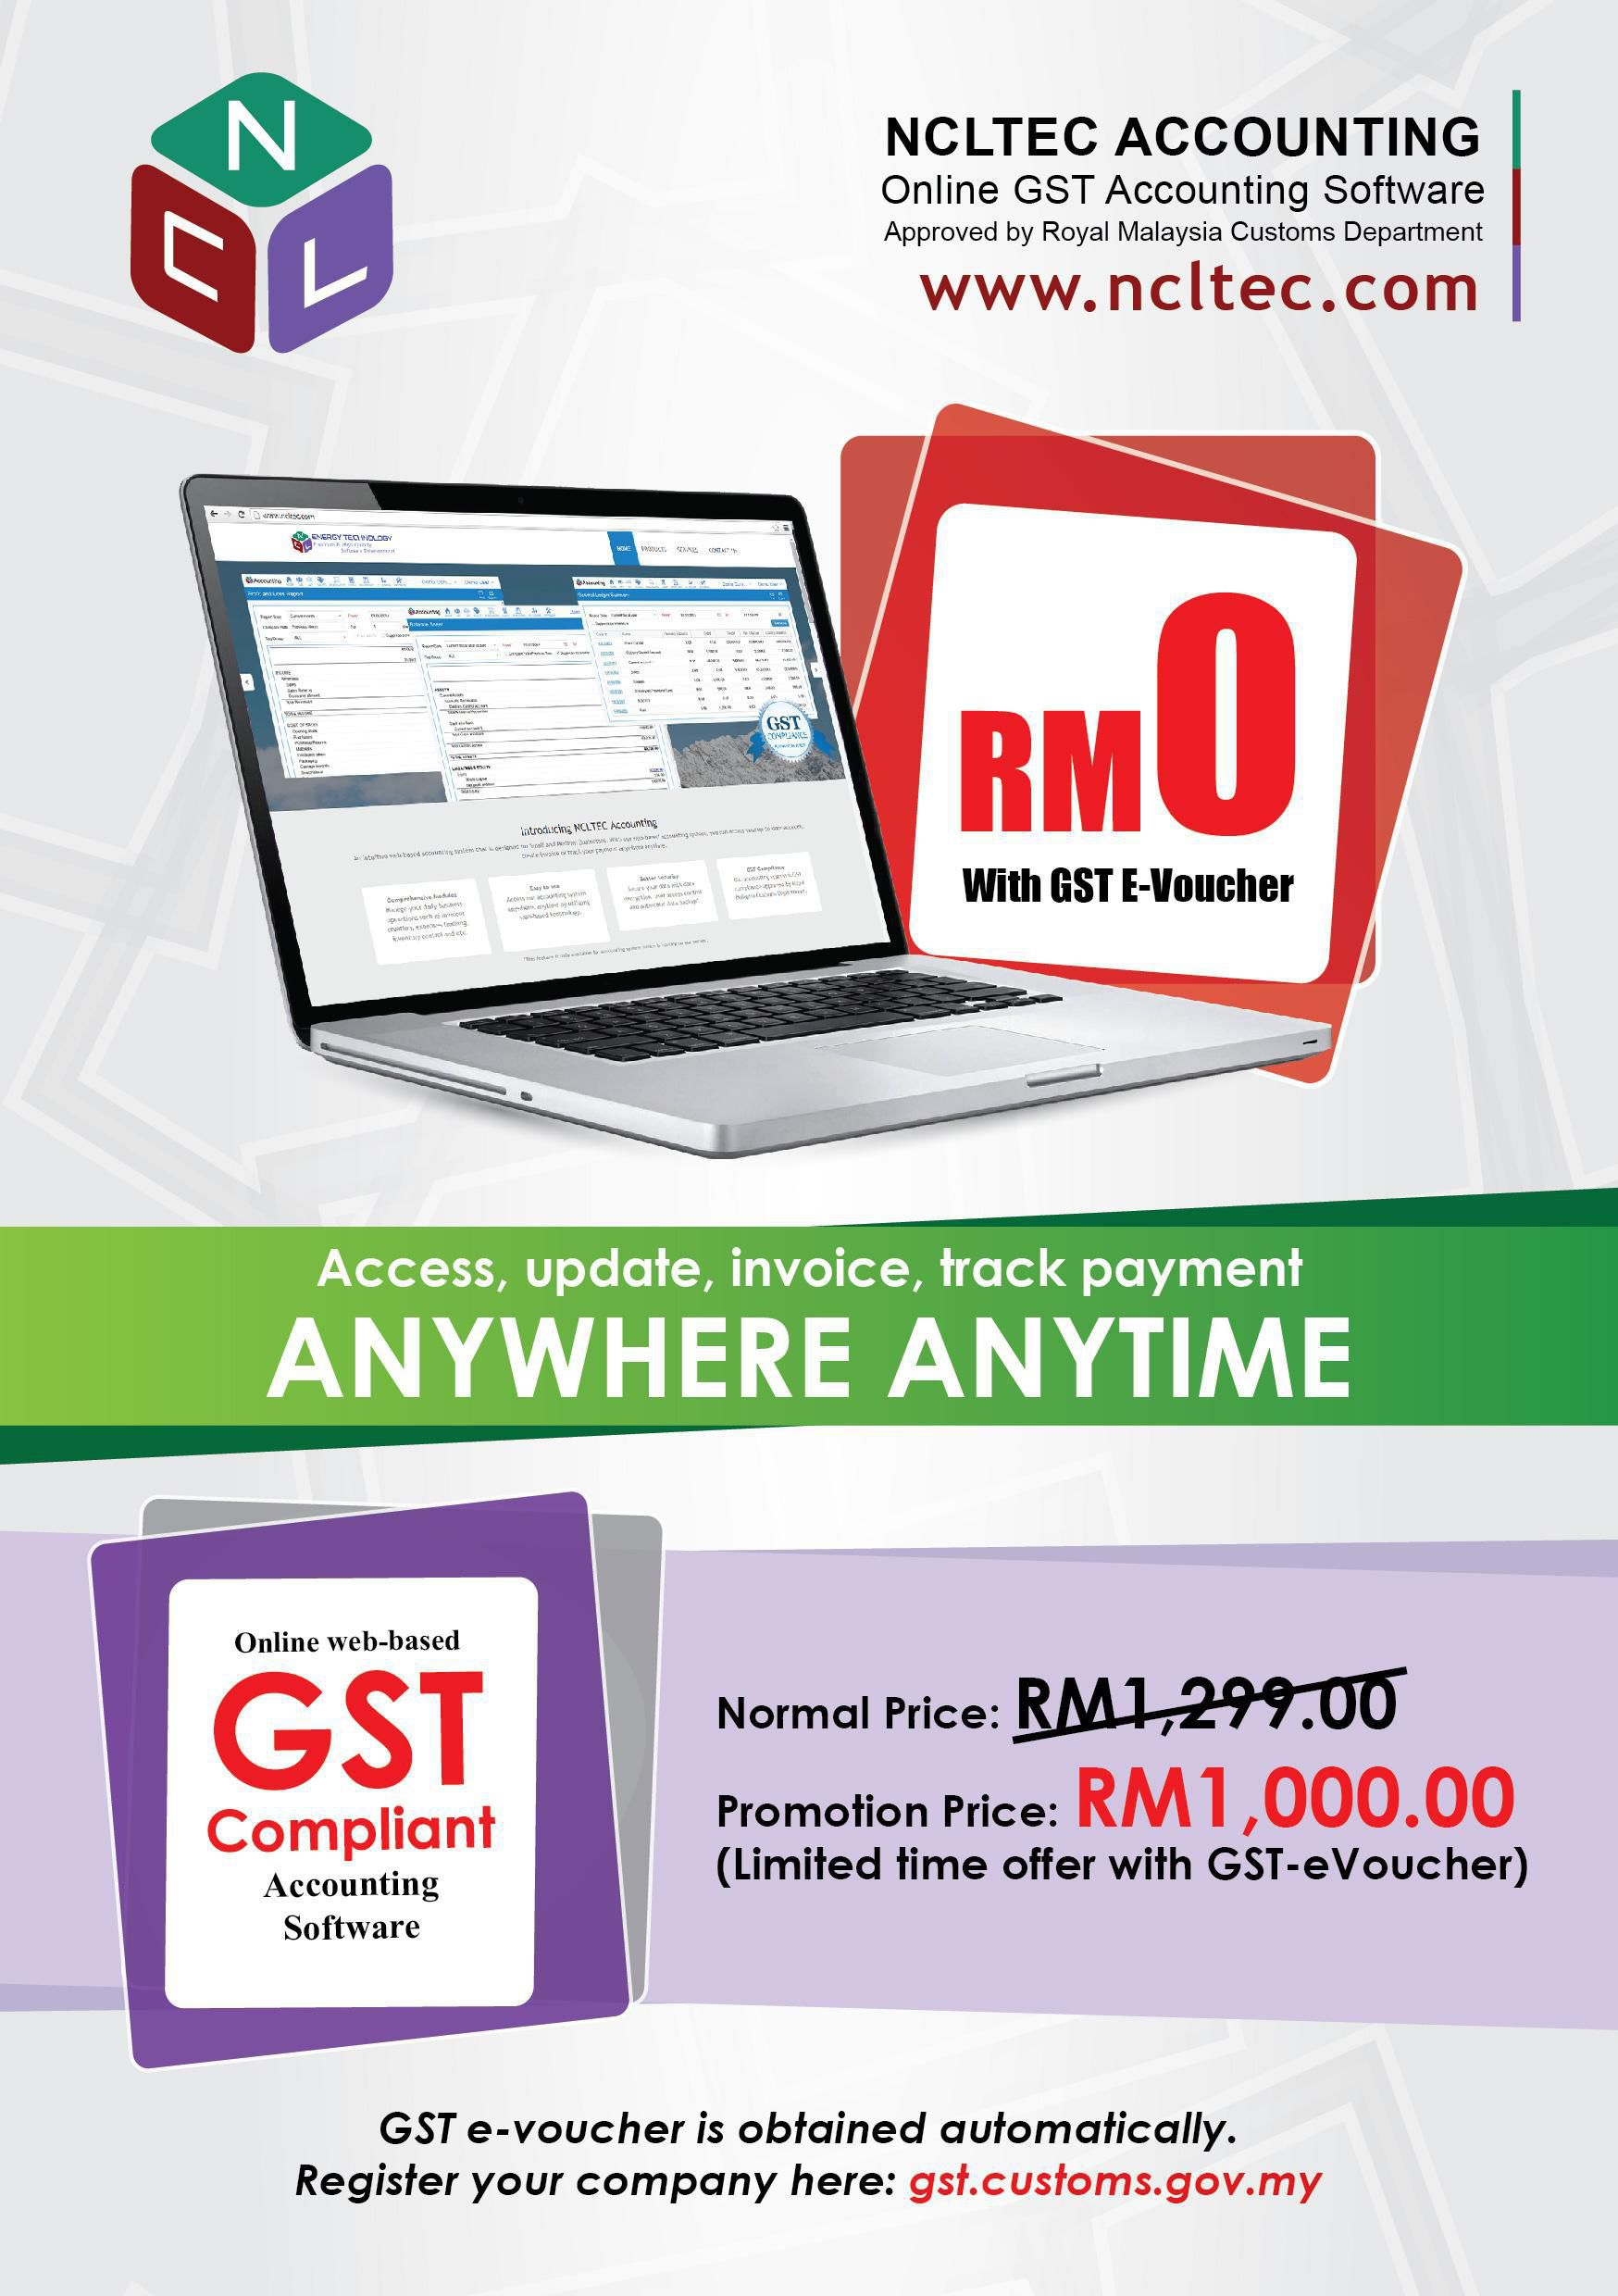 Gst Compliance Online Accounting Software Web Based